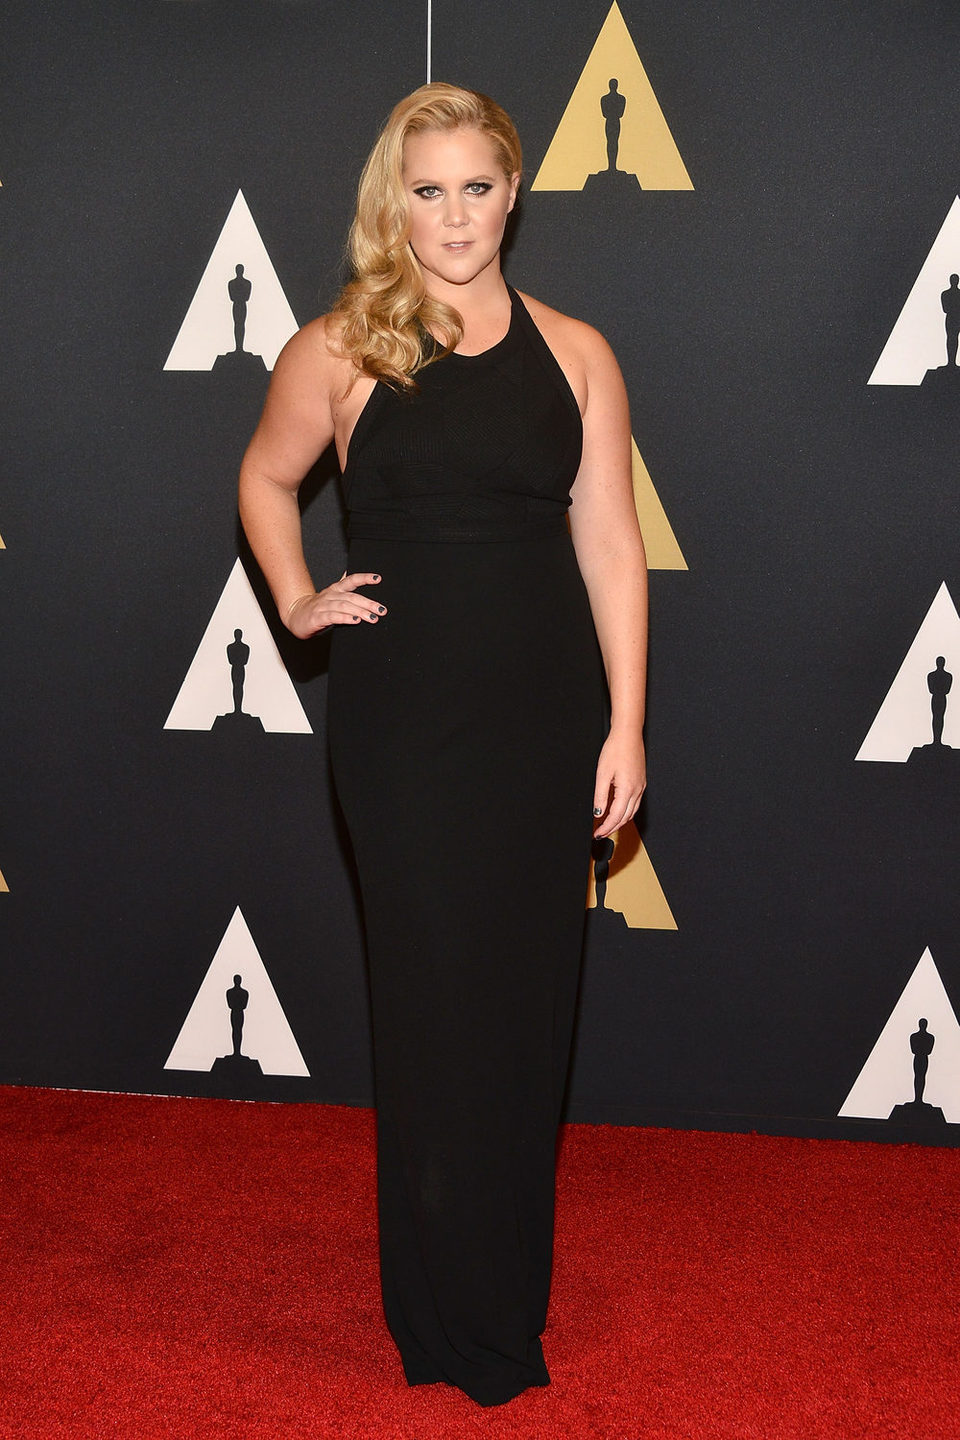 Amy Schumer en los Governor's Awards 2015